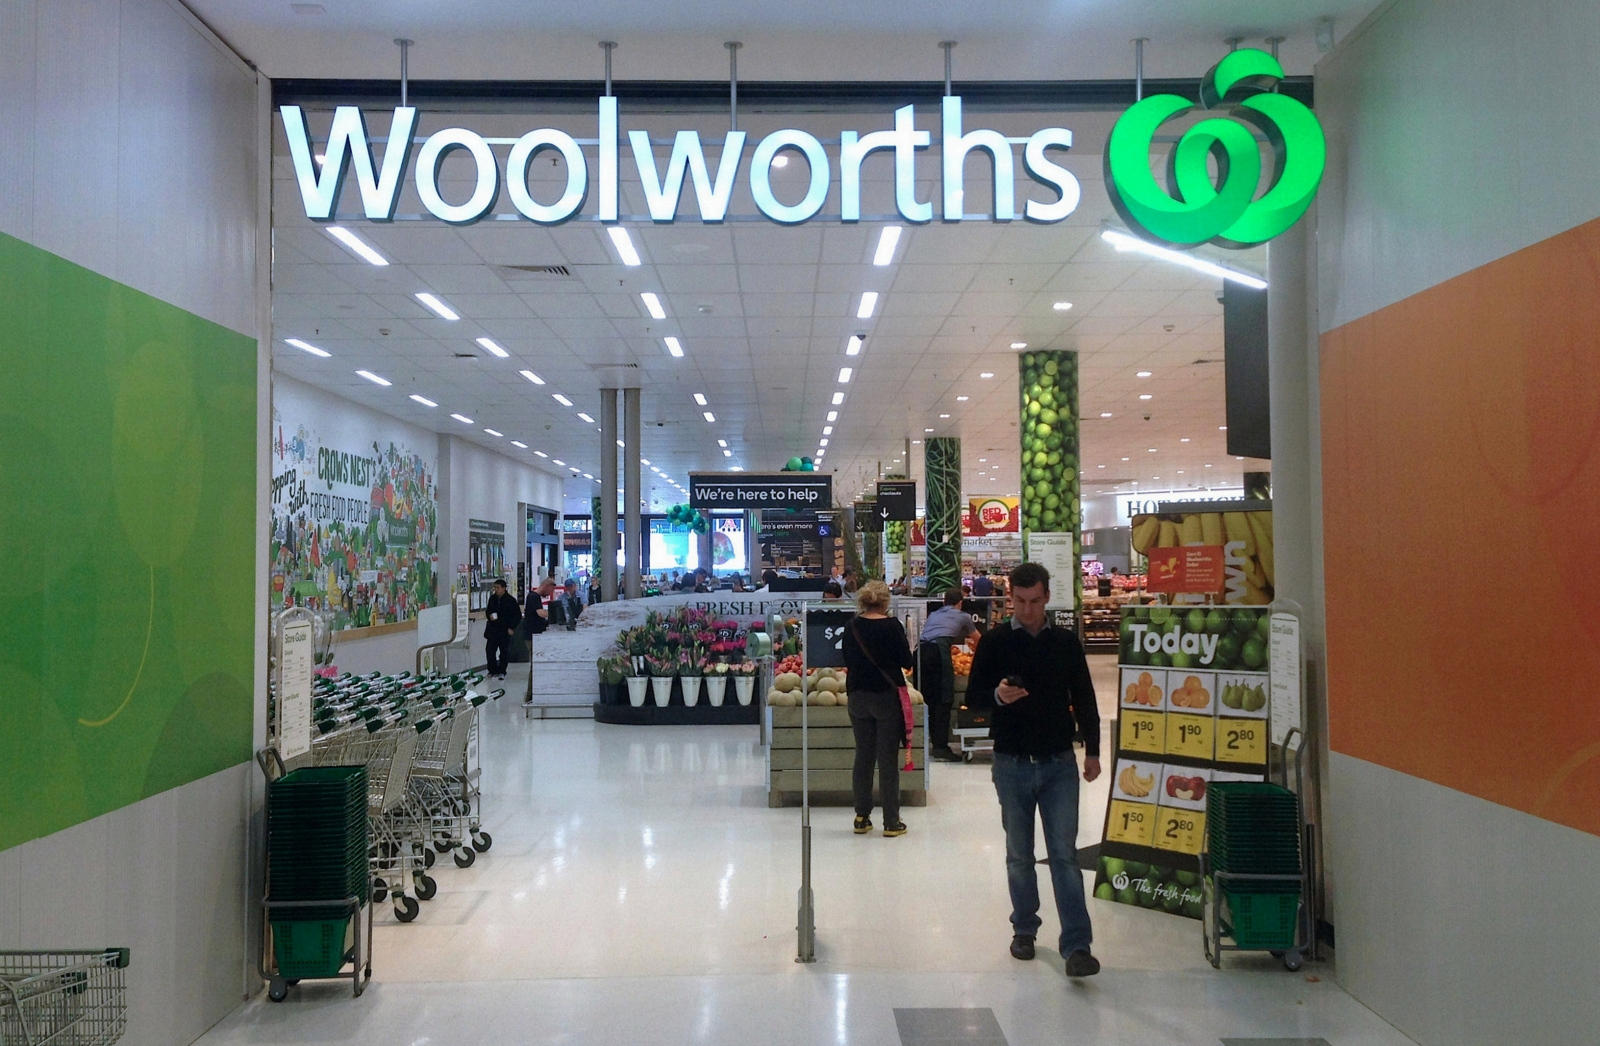 BP to buy the fuel business of Australia's Woolworths for about £1bn